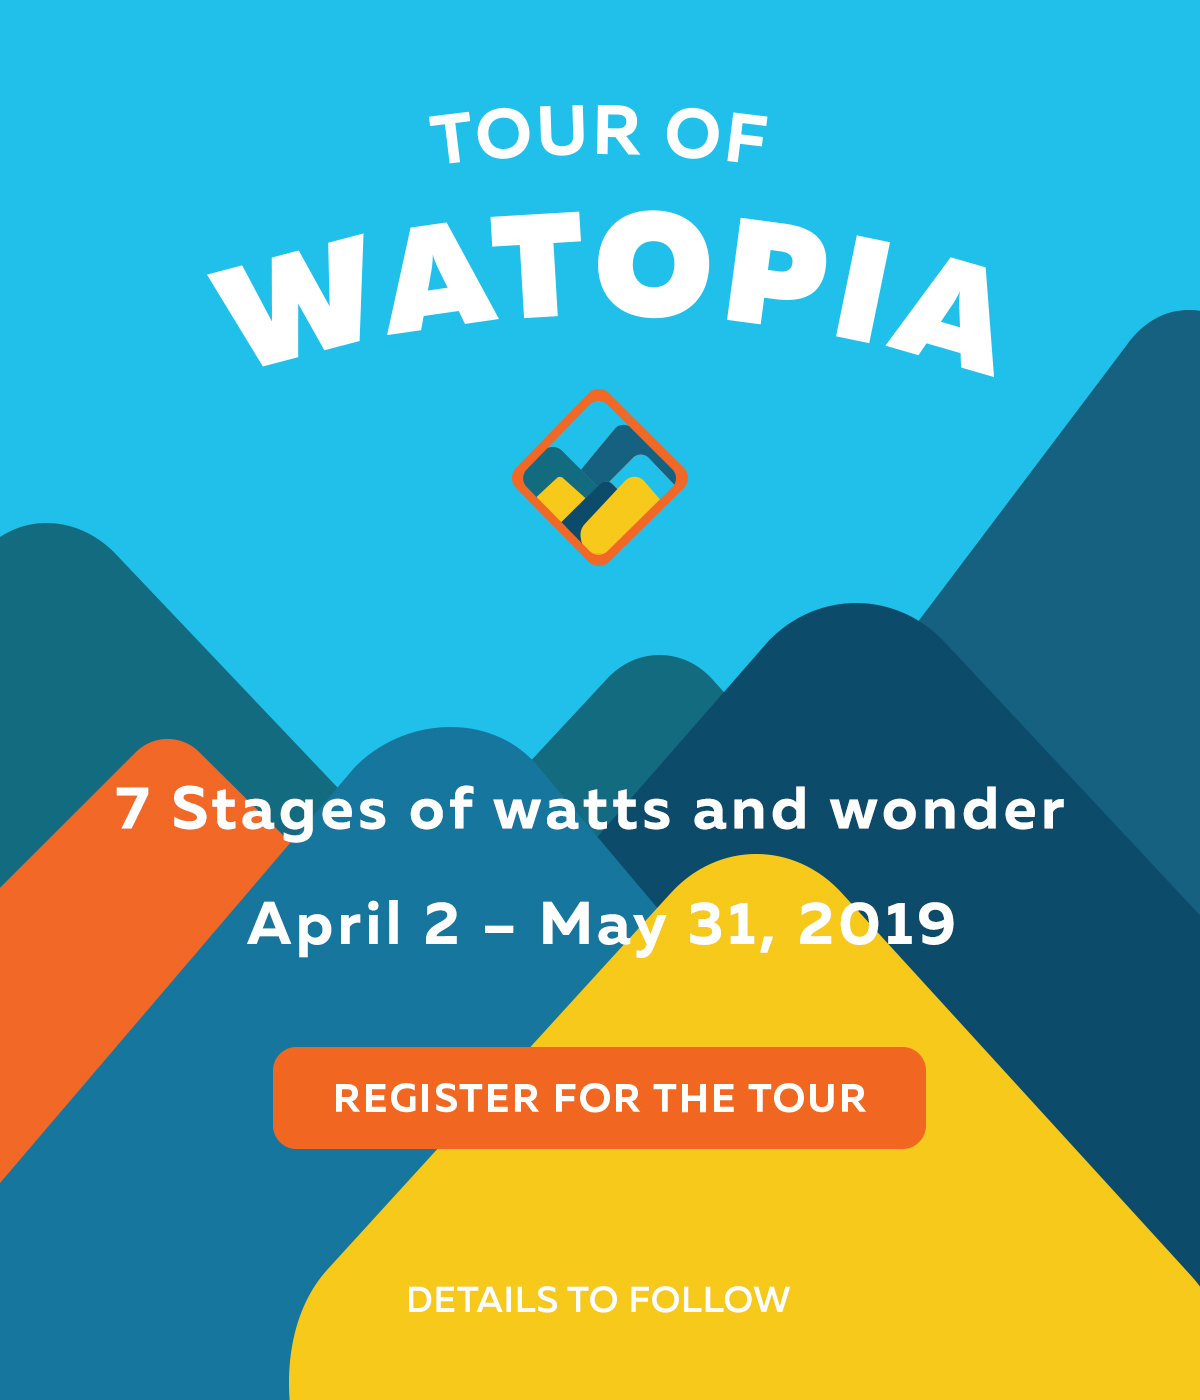 Tour of Watopia  7 stages of watts and wonders  April 2 - May 31 2019  Register For The Tour  More details to follow